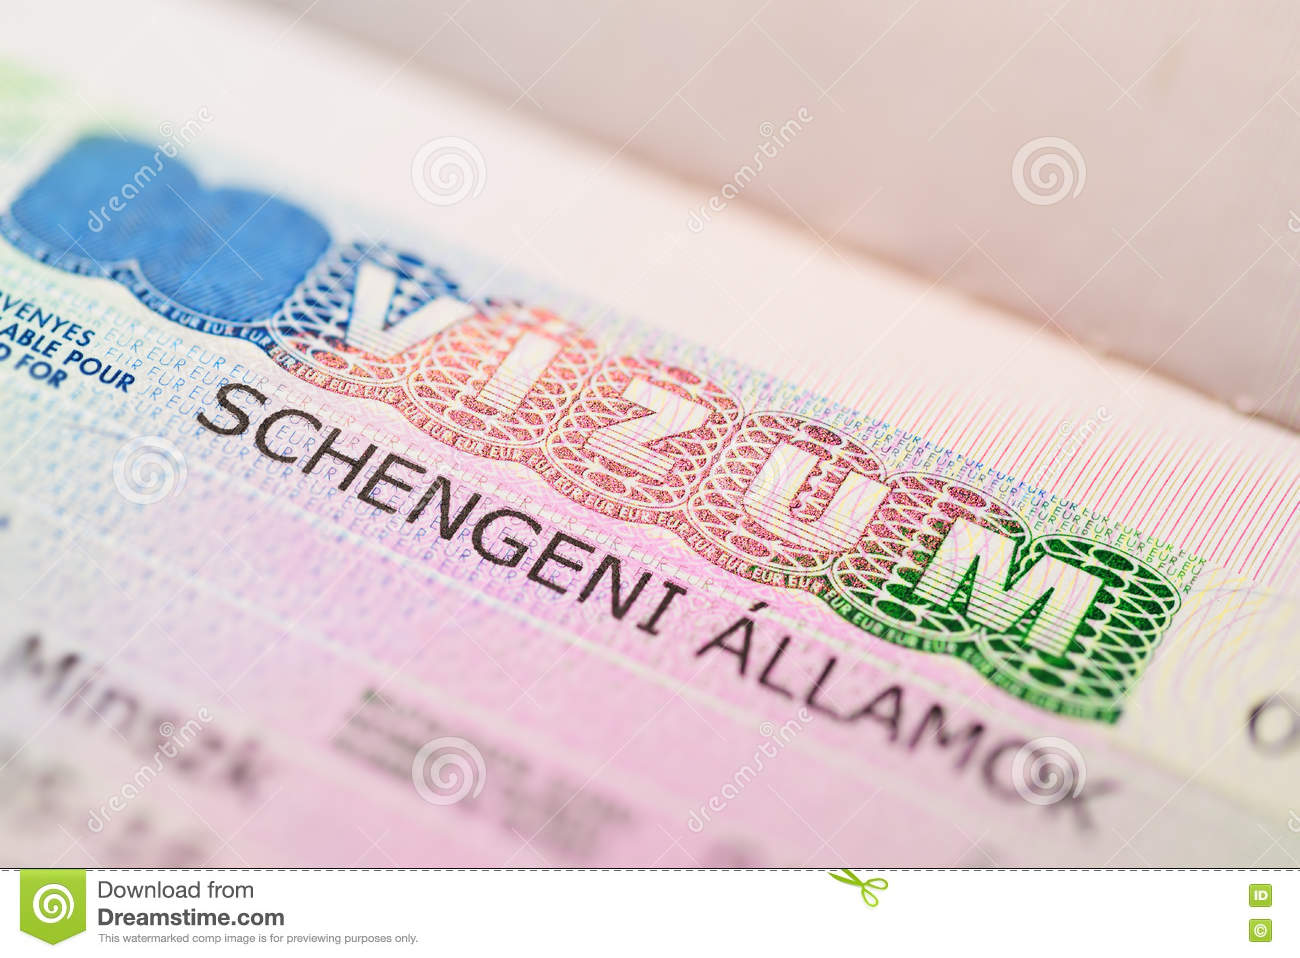 Europe Sticker Visa Photos Free Royalty Free Stock Photos From Dreamstime